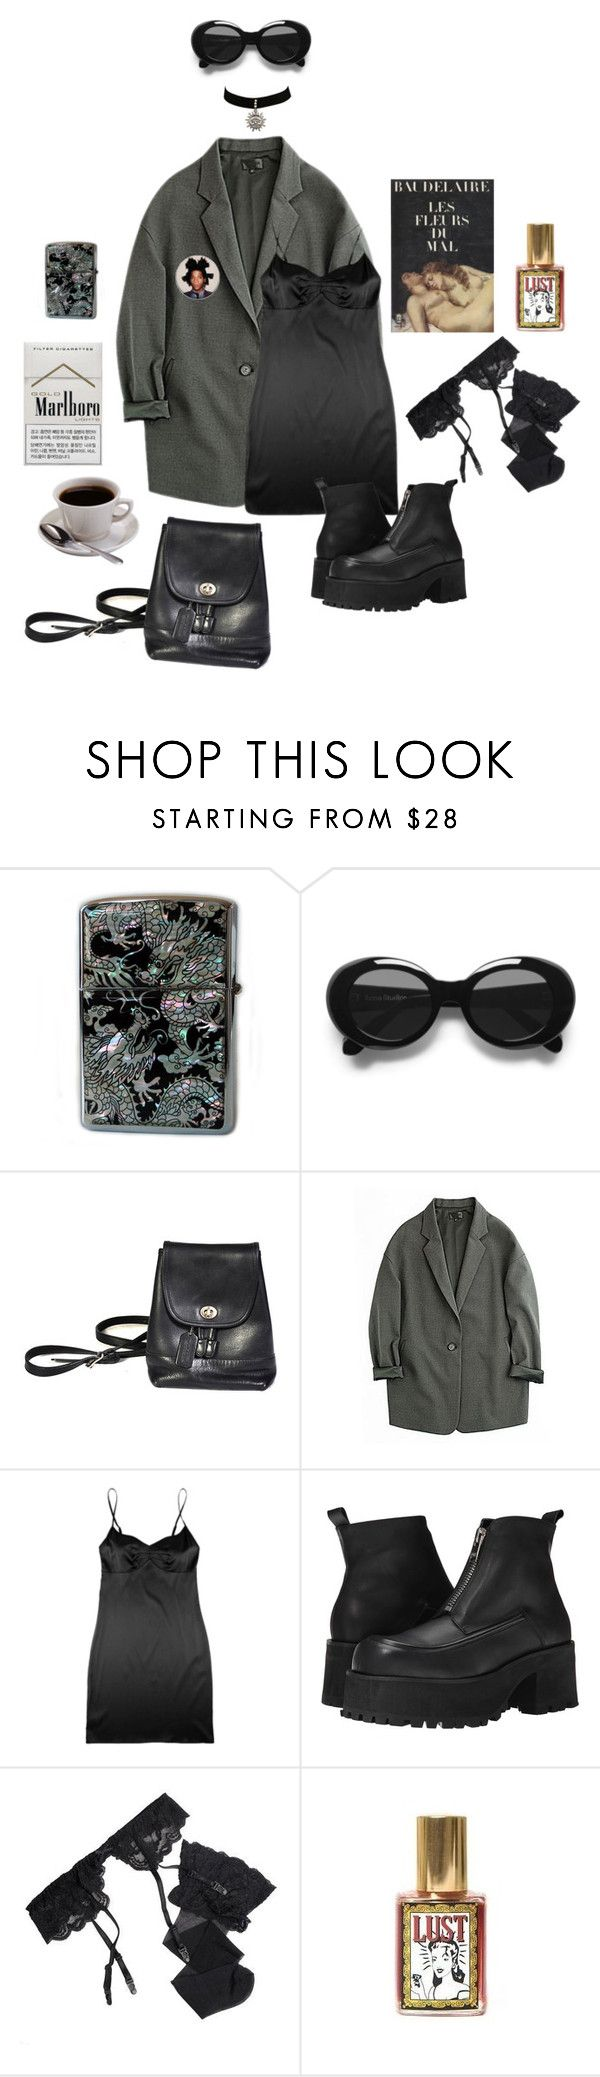 """Dreaming of you (Cigarette after sex)"" by dollhoe ❤ liked on Polyvore featuring Zippo, Acne Studios, JULIANNE, UNIF, Reger by Janet Reger and Baudelaire"